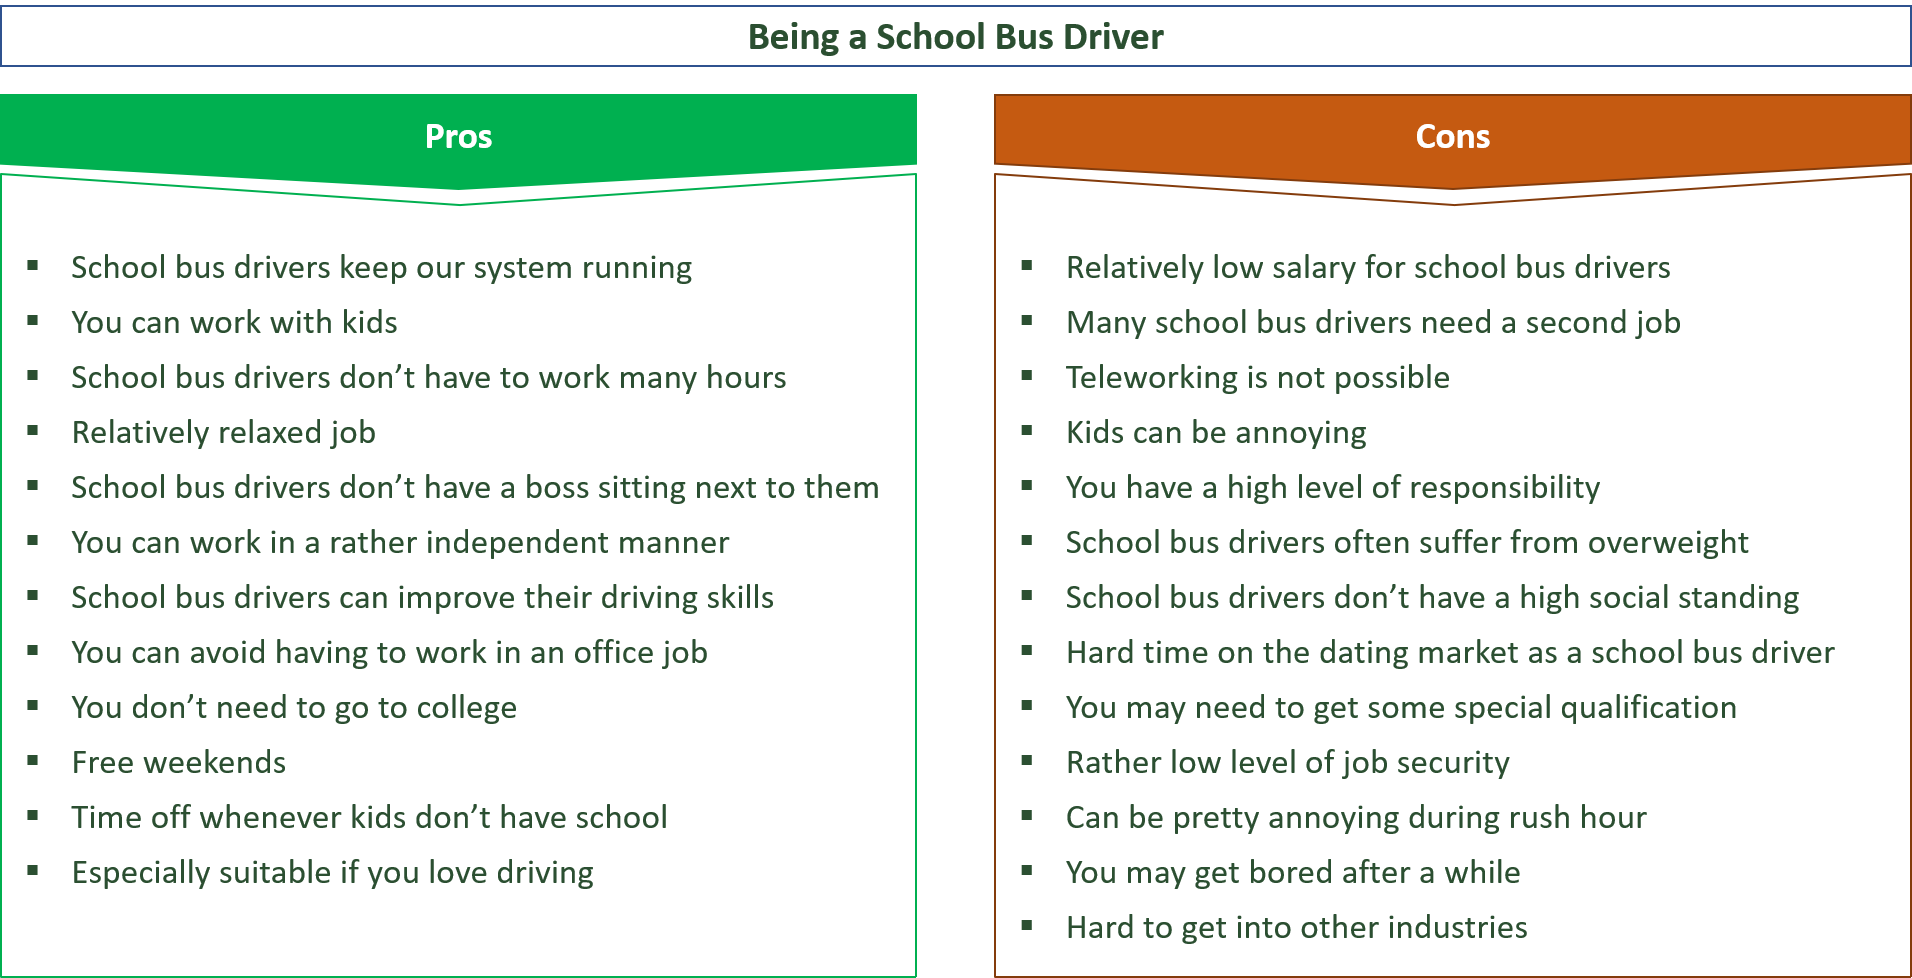 advantages and disadvantages of being a school bus driver